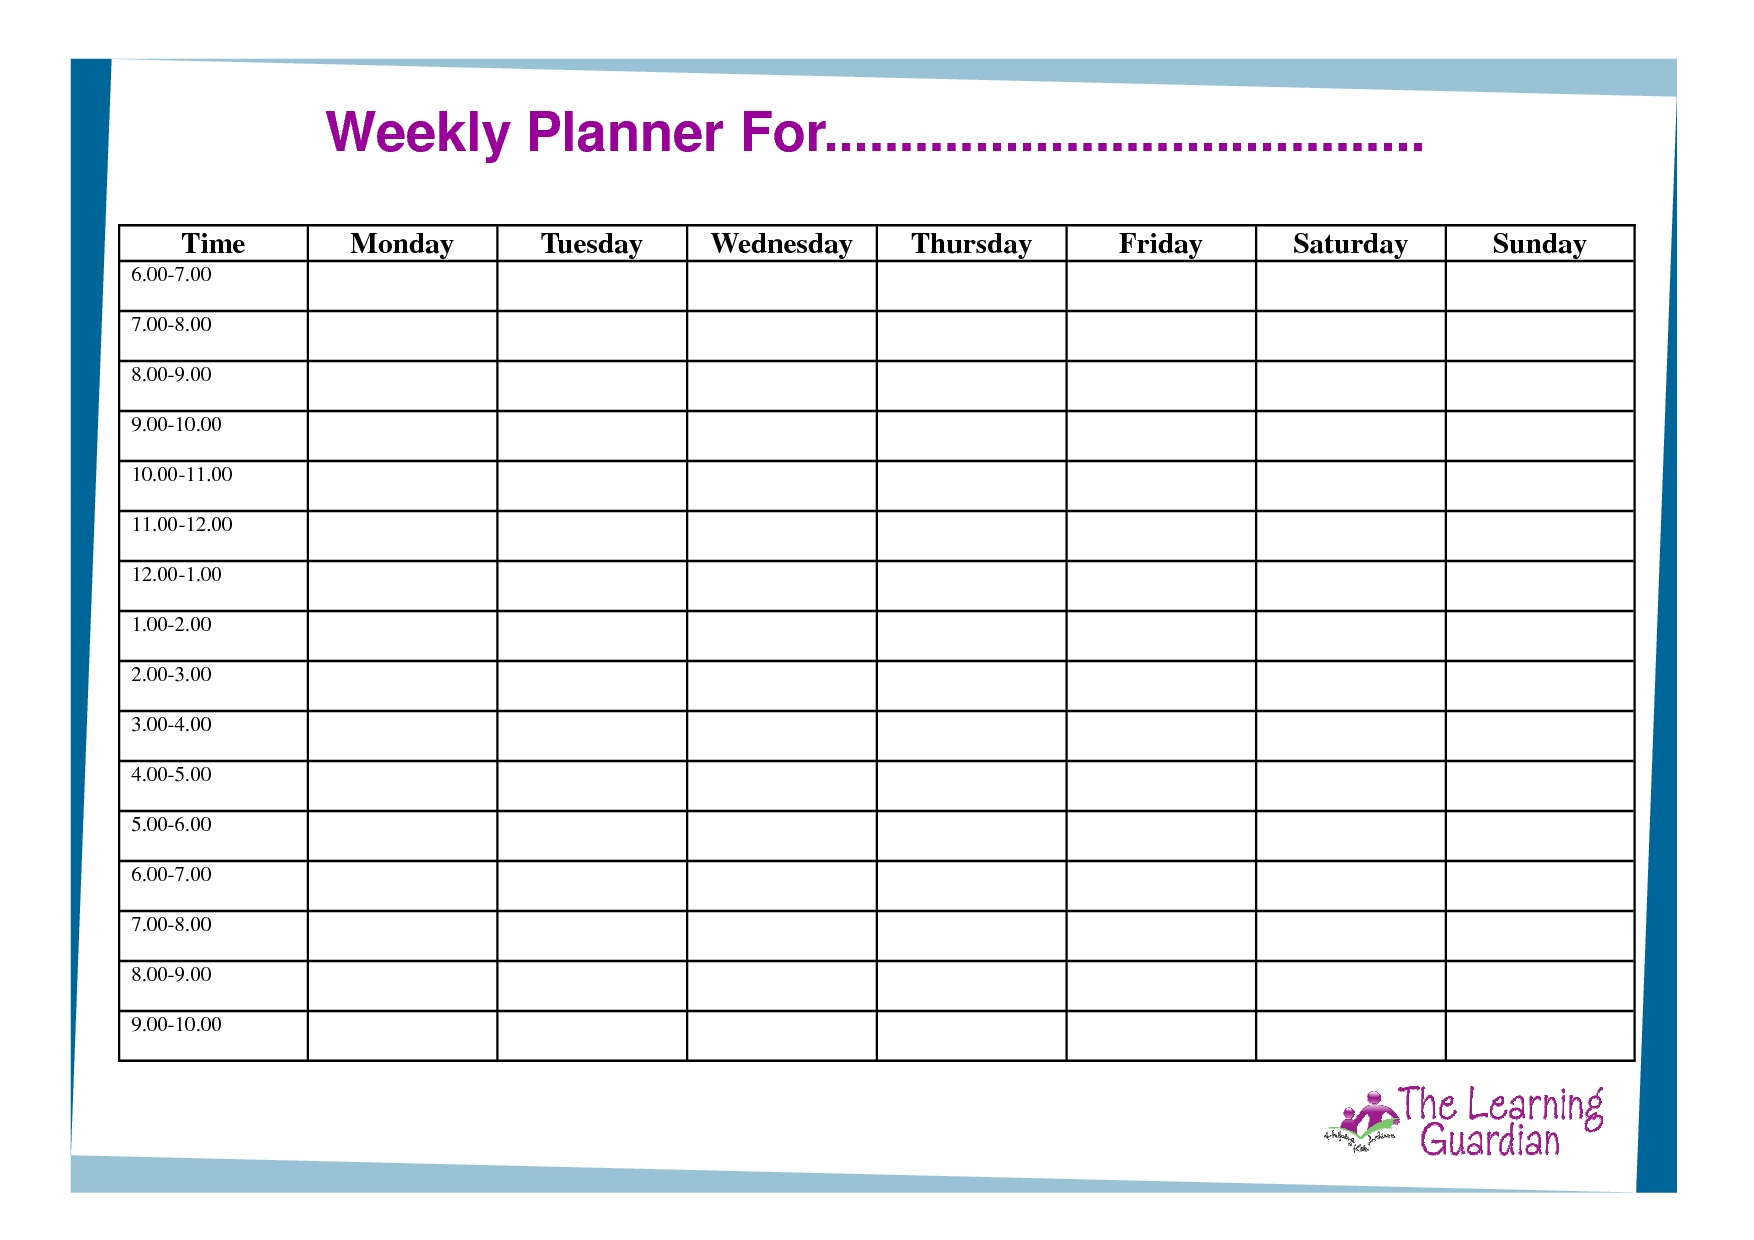 Free Printable Weekly Calendar Templates | Weekly Planner For Time within Monday To Friday Schedule Template